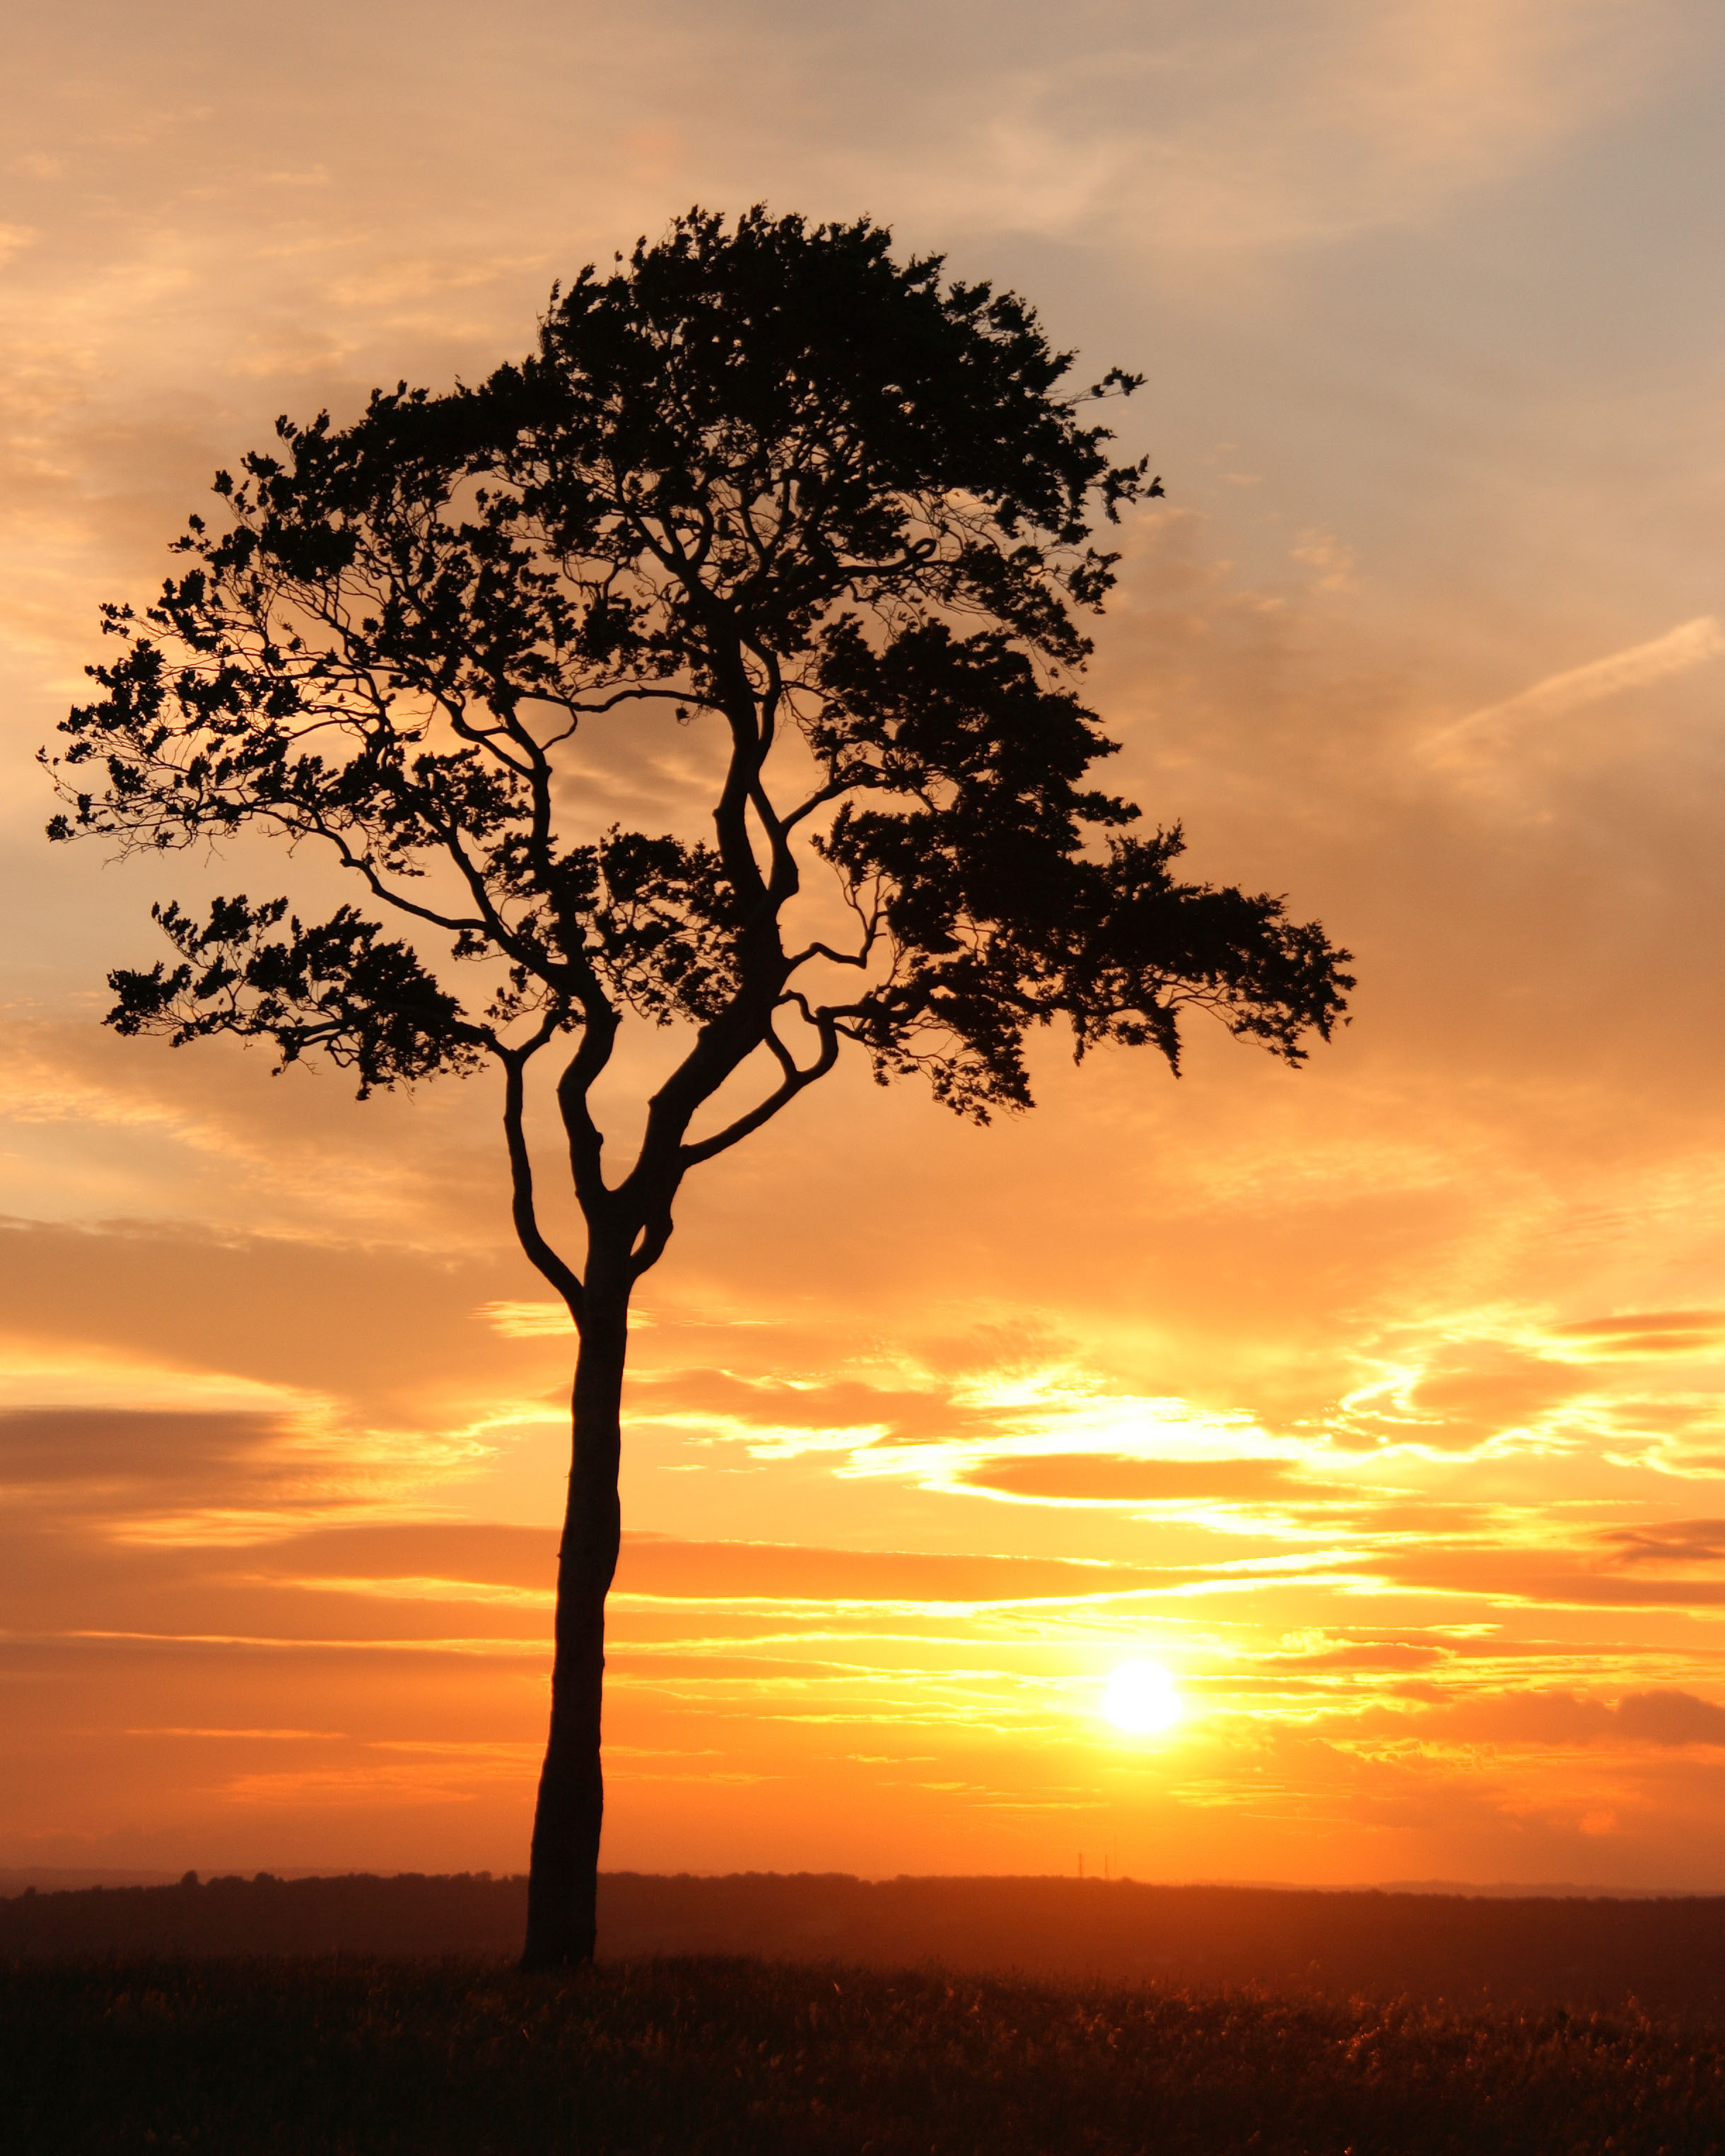 Tree At Sunset © Geraint Owen 26Apr2012